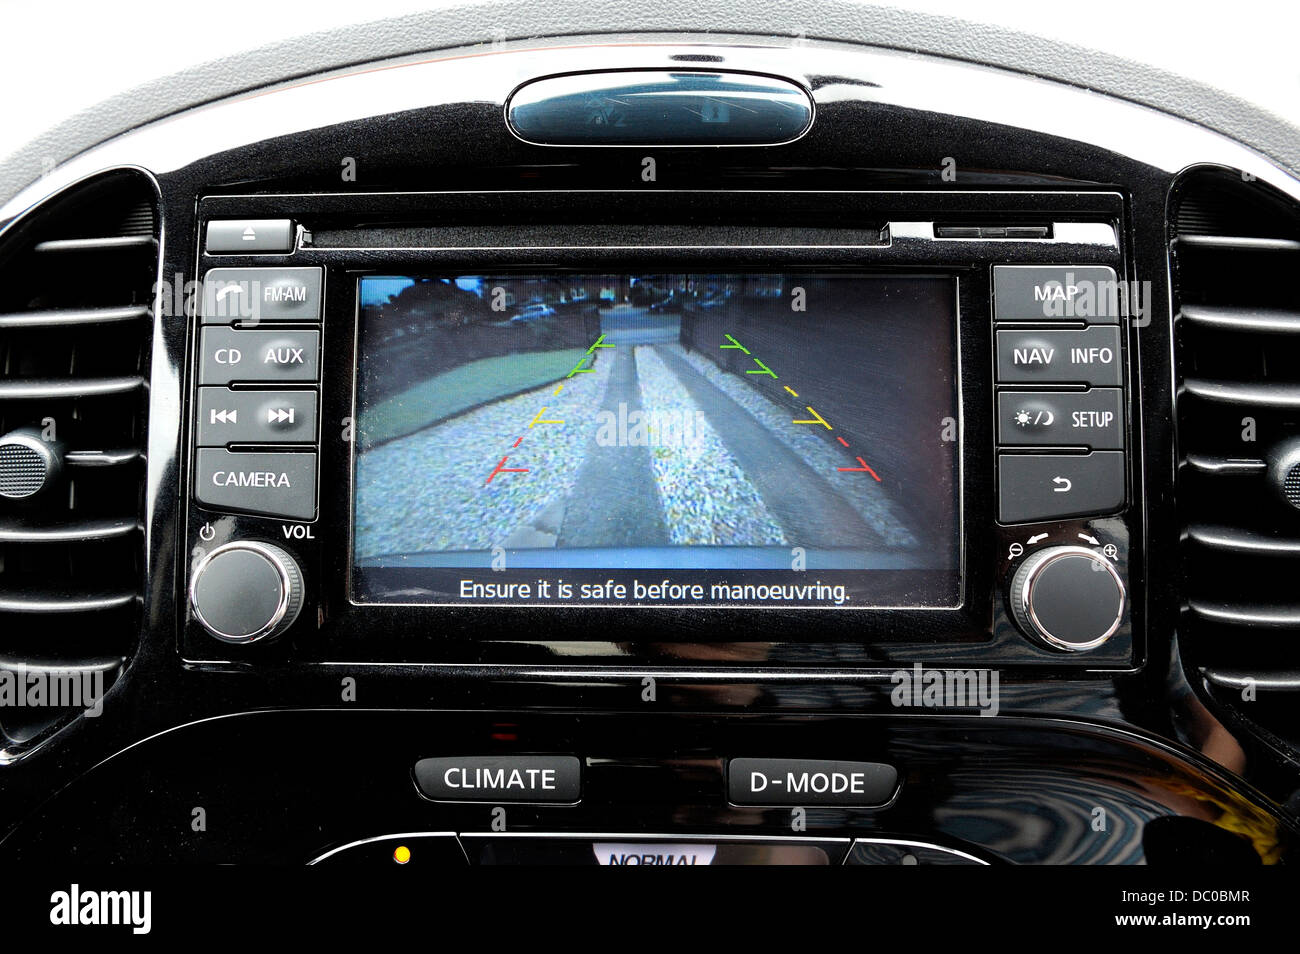 Interior Car Dashboard Of A Nissan Juke Showing Reversing Camera View